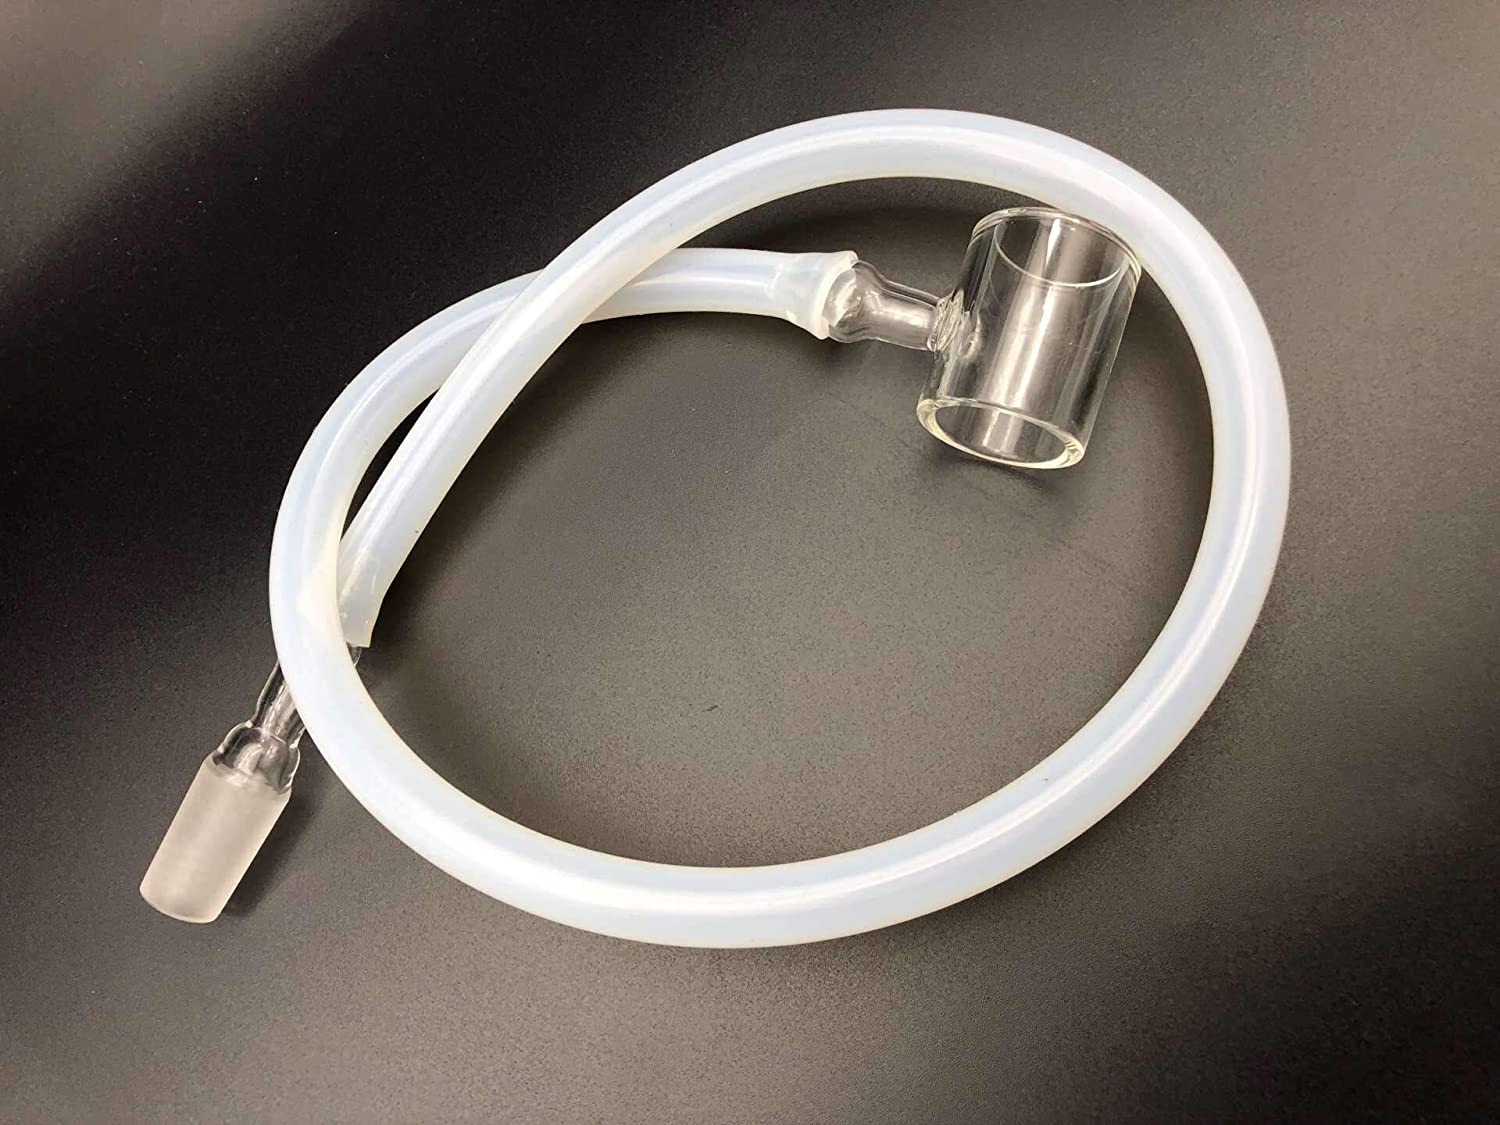 18mm Male Glass Adapter Connector with 500mm Length Silicone Hose for Dr Da00er B00st 14mm 14mm Dabad0 Yuanxiang